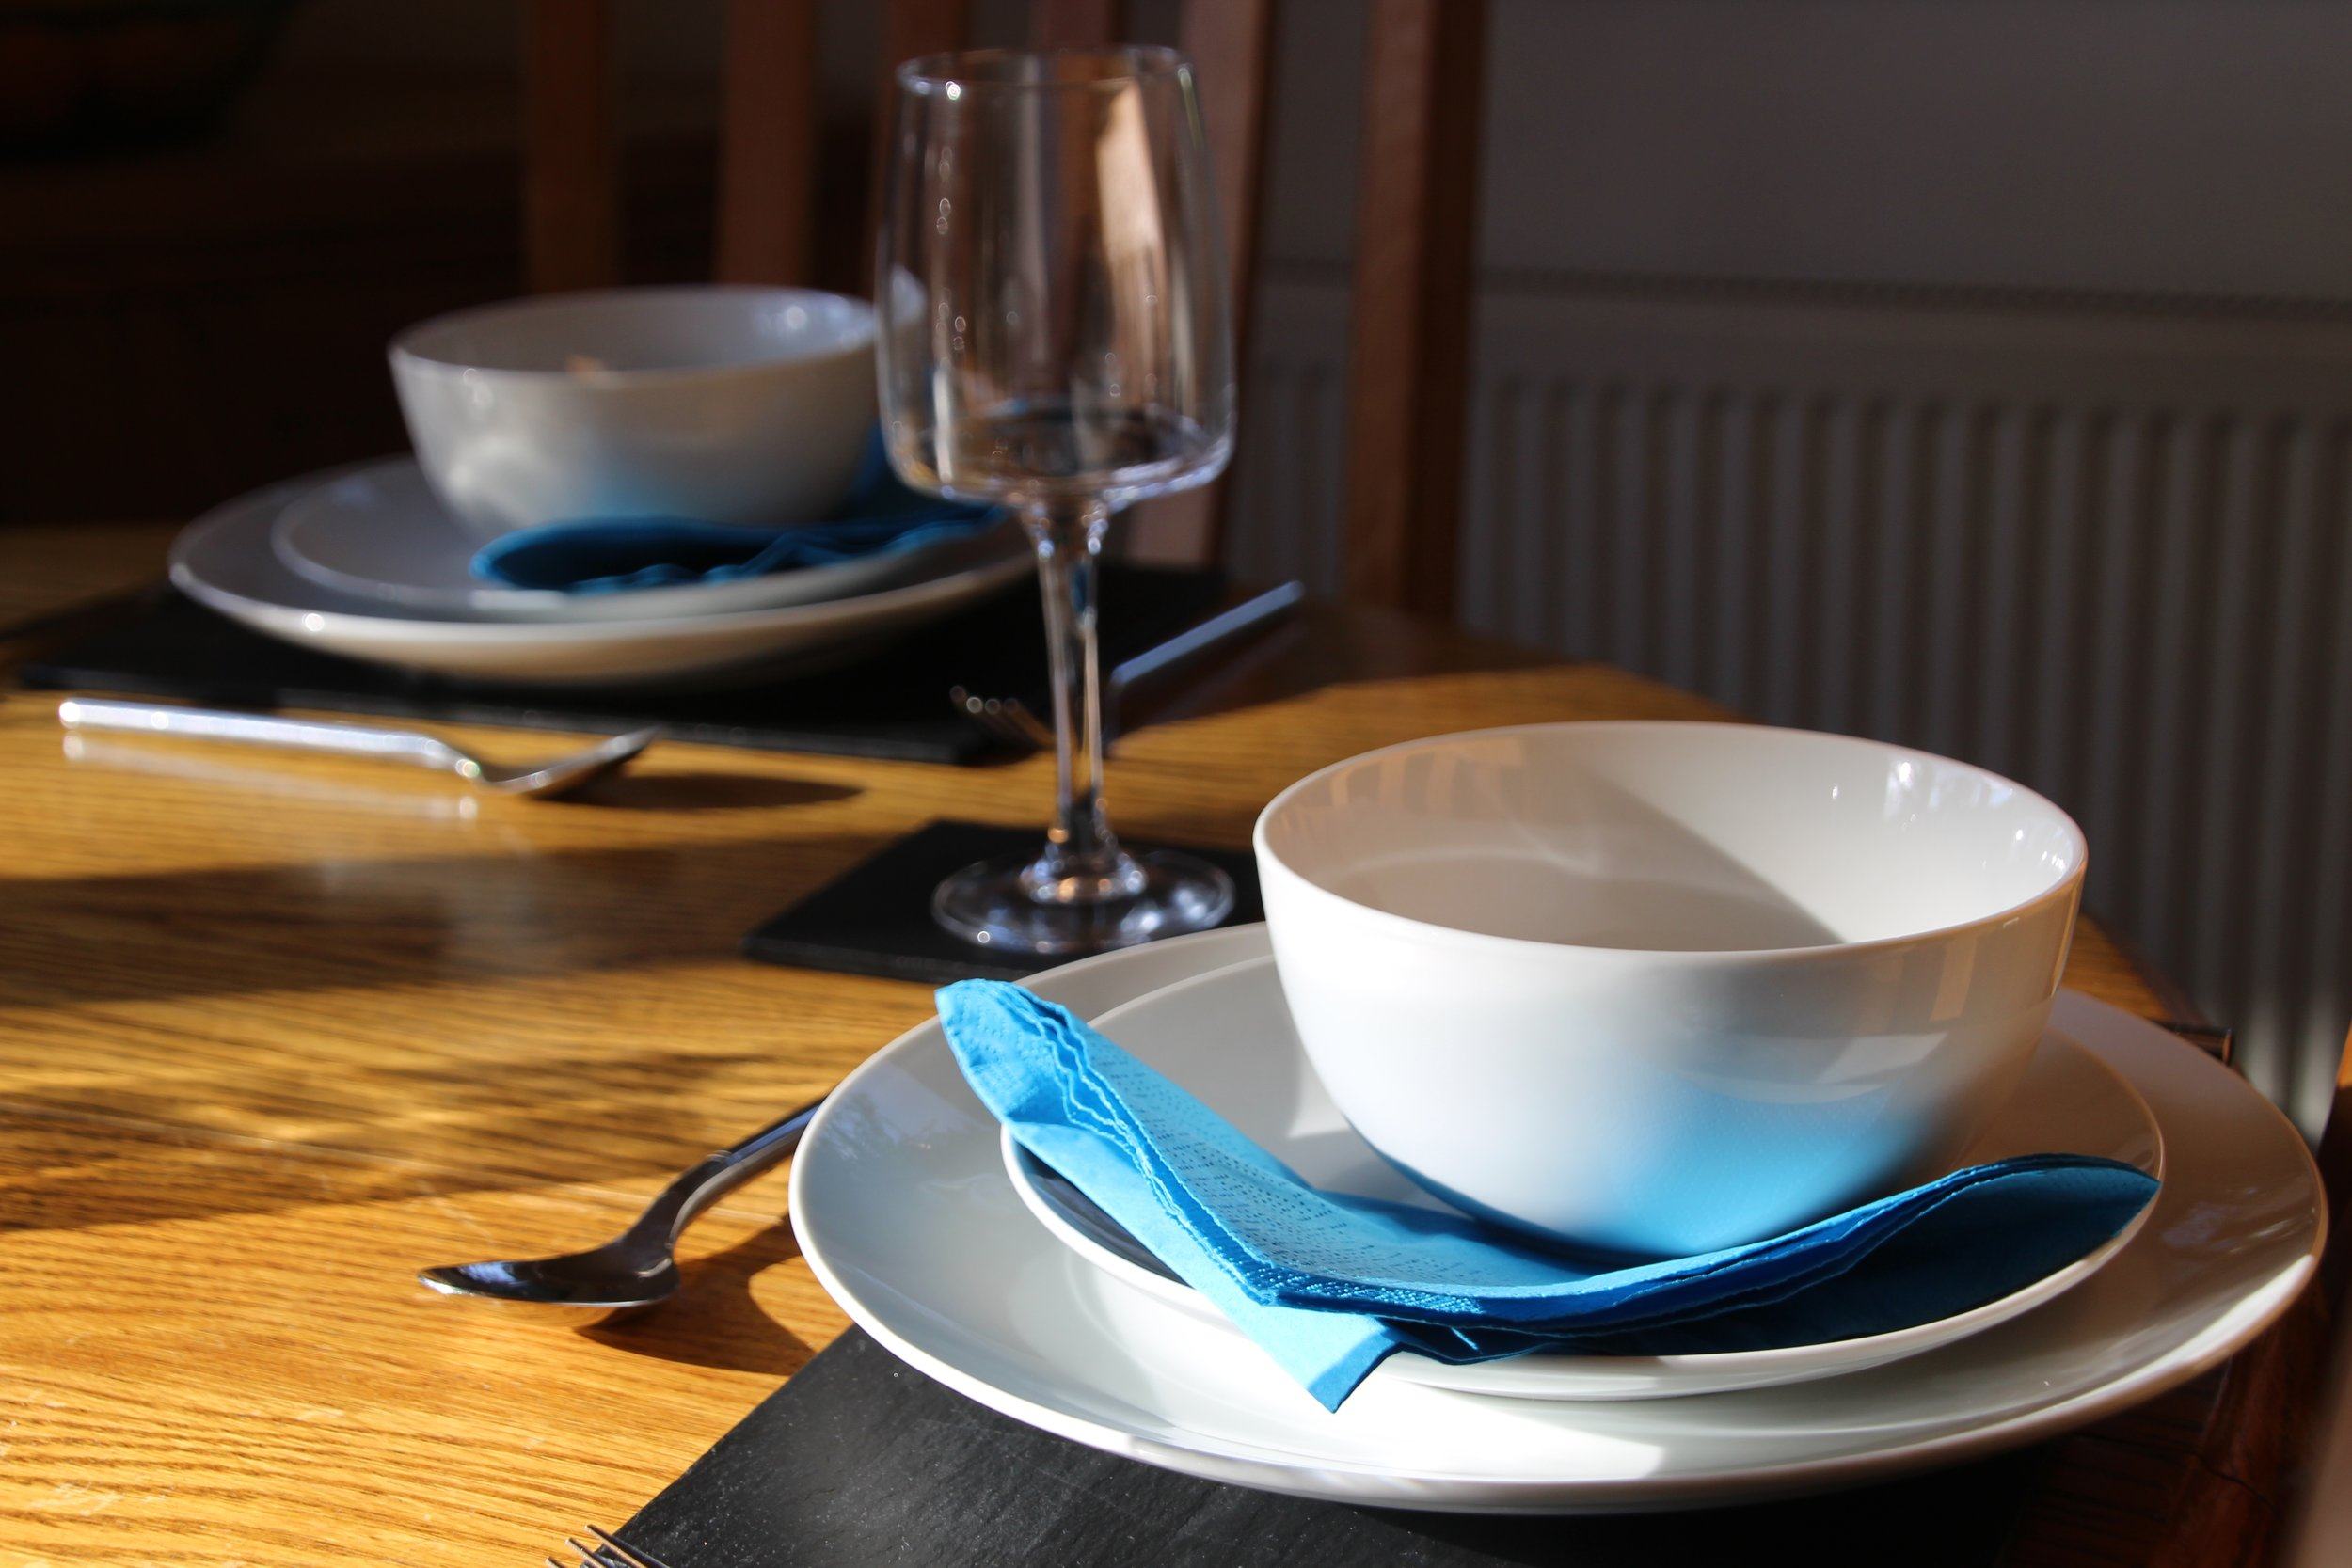 Contemporary crockery and glassware